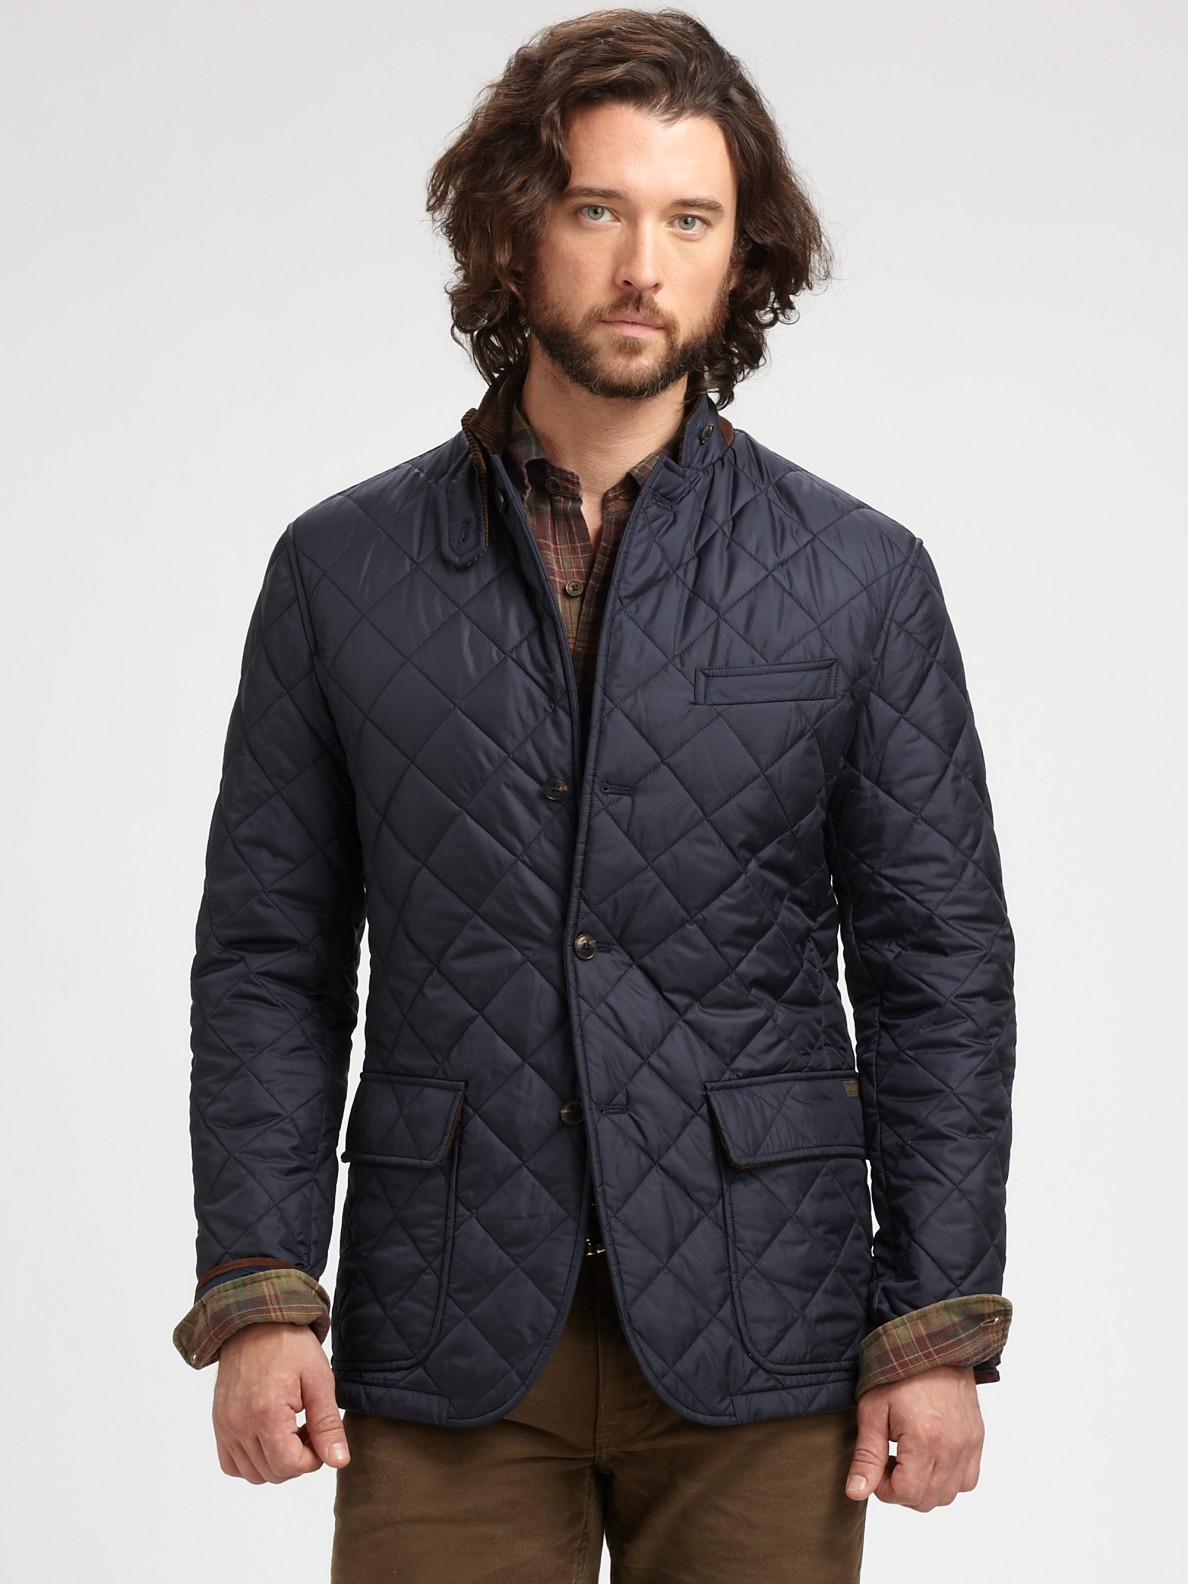 lyst polo ralph lauren quilted sport coat in blue for men. Black Bedroom Furniture Sets. Home Design Ideas